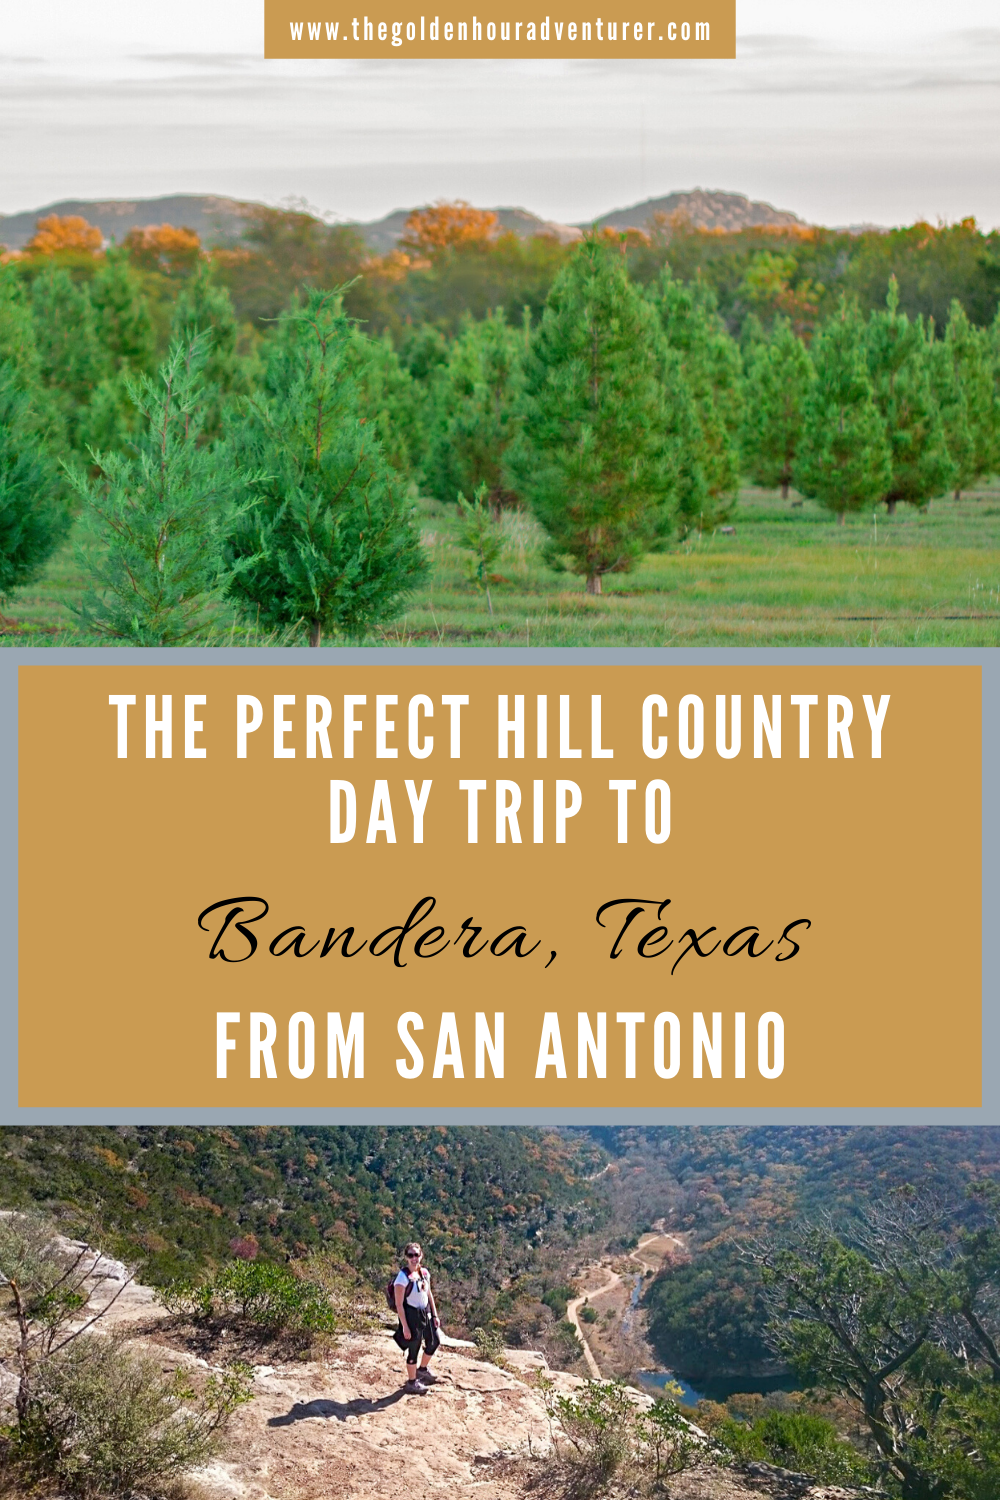 Bandera Tx A Hill Country Day Trip From San Antonio In 2020 Day Trips Usa Travel Guide America Travel